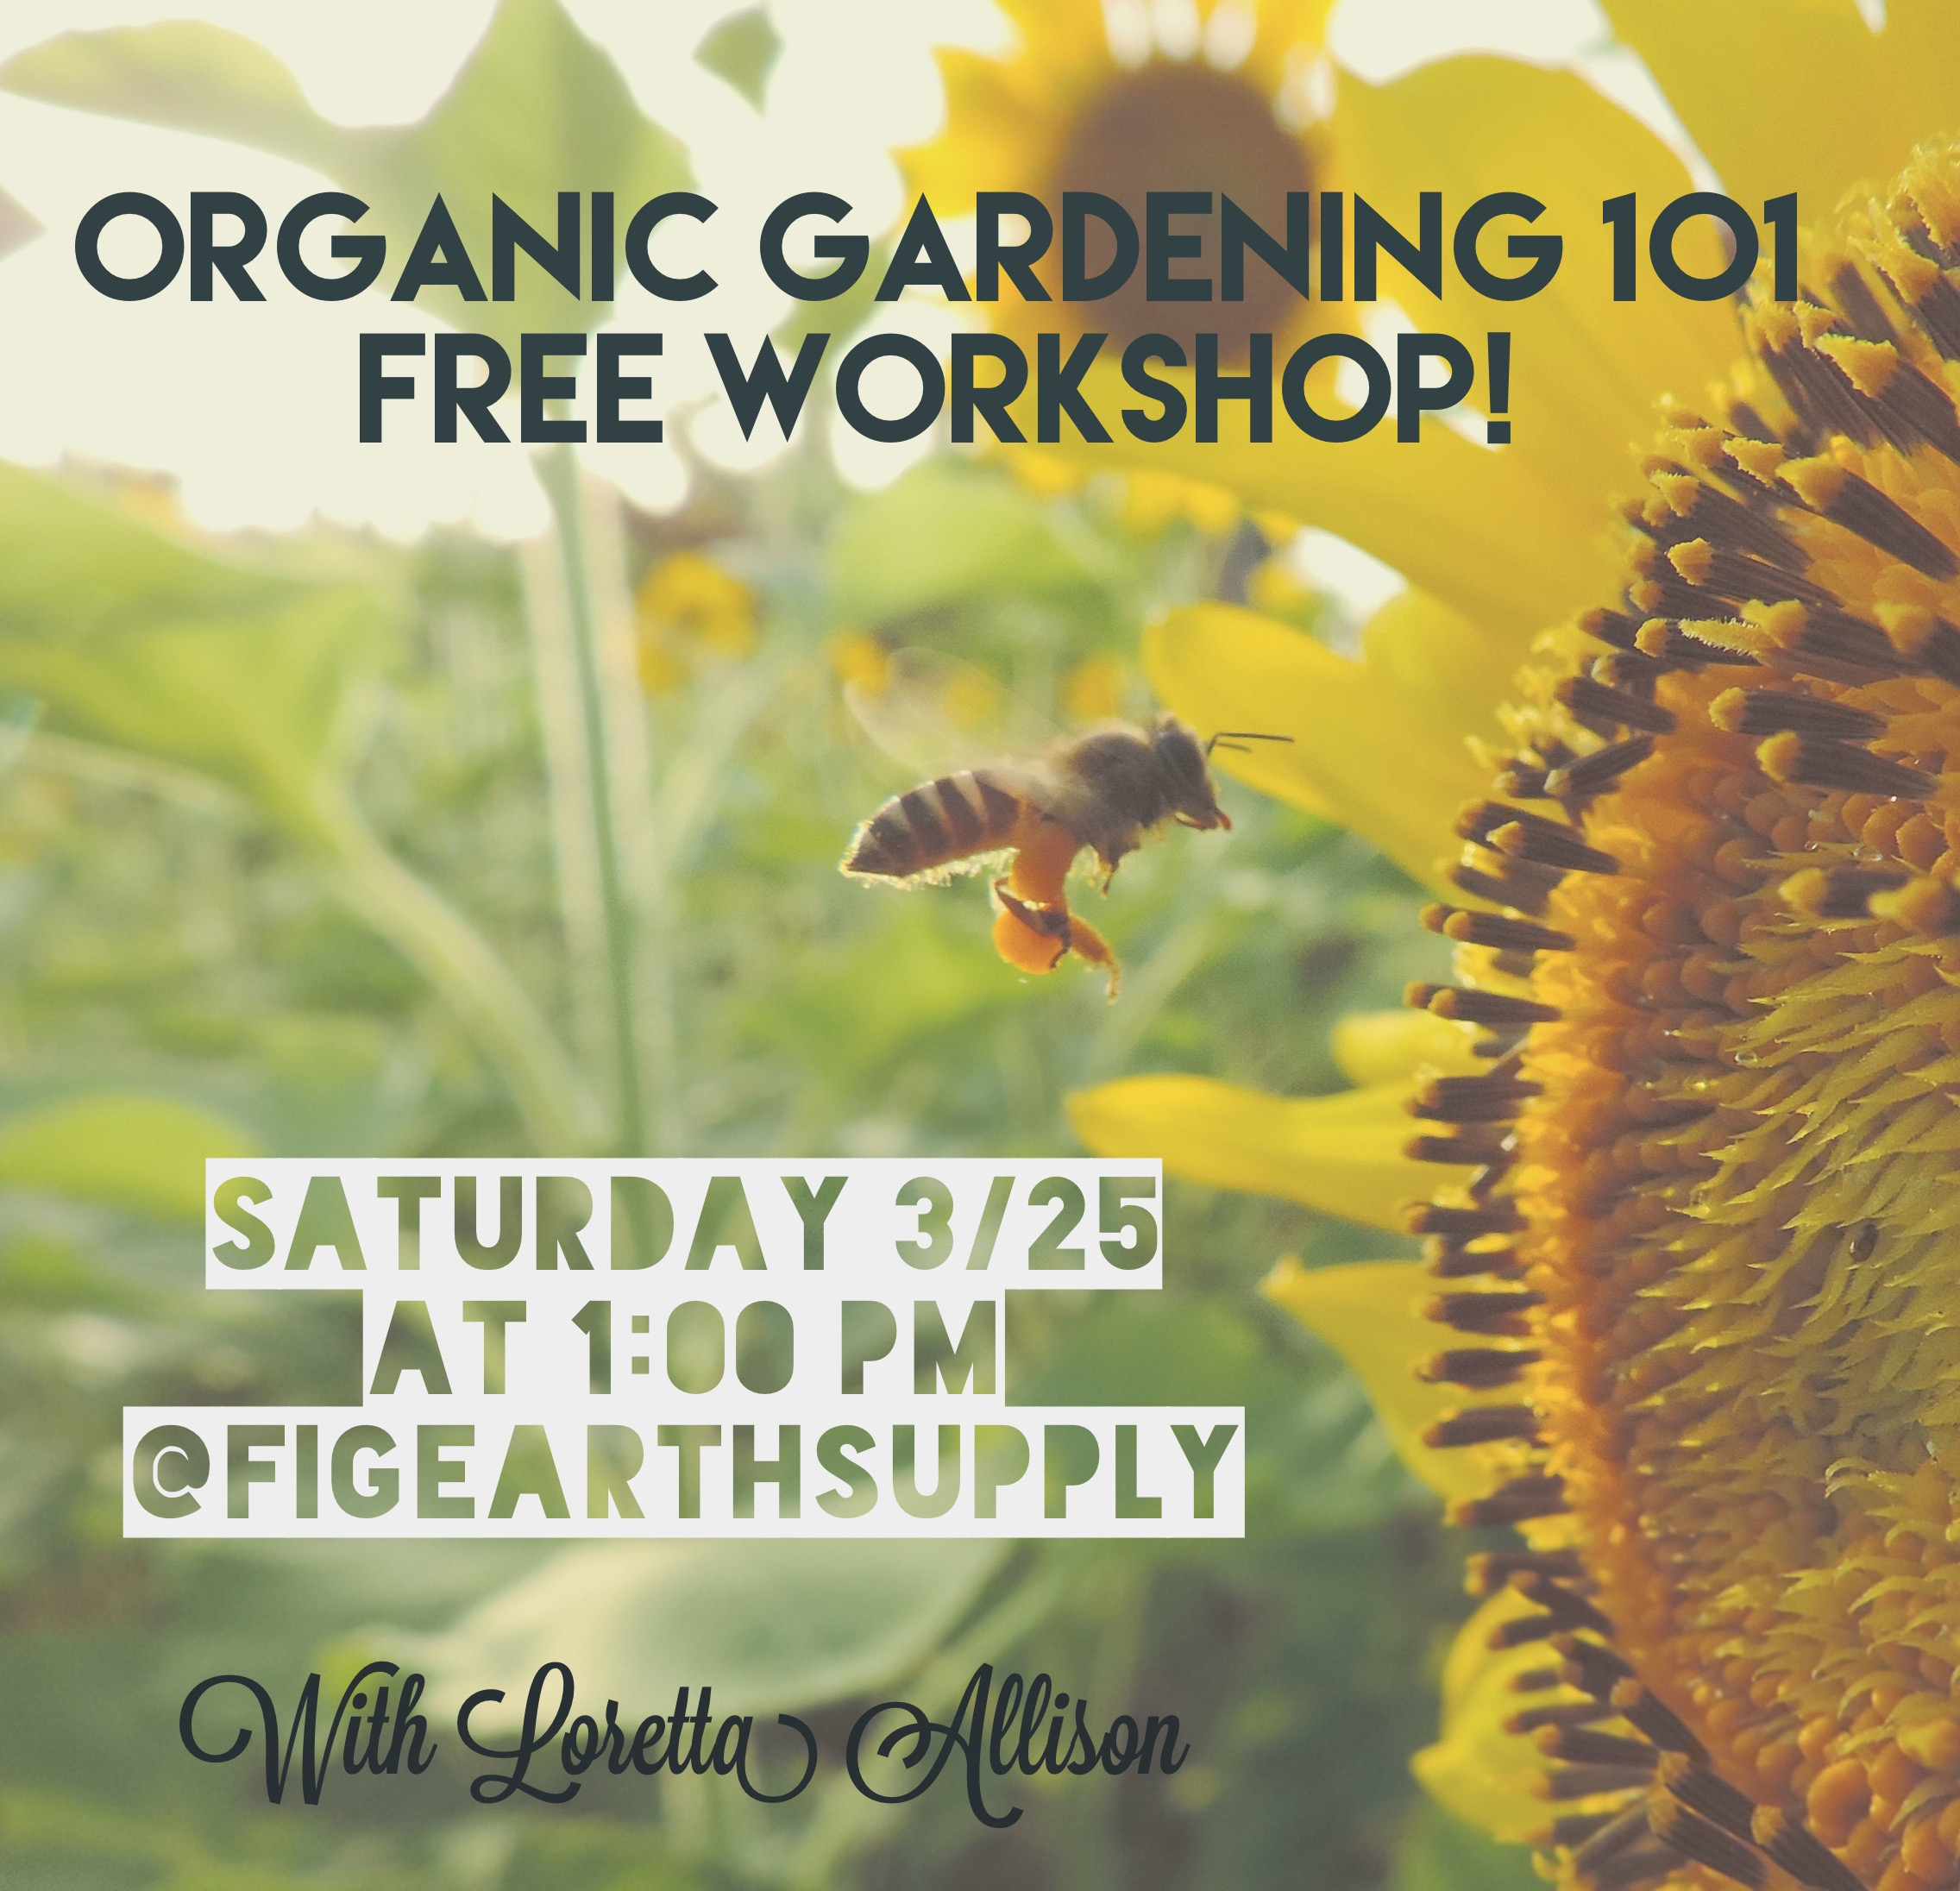 organic-gardening-workshops-los-angeles-california.JPG